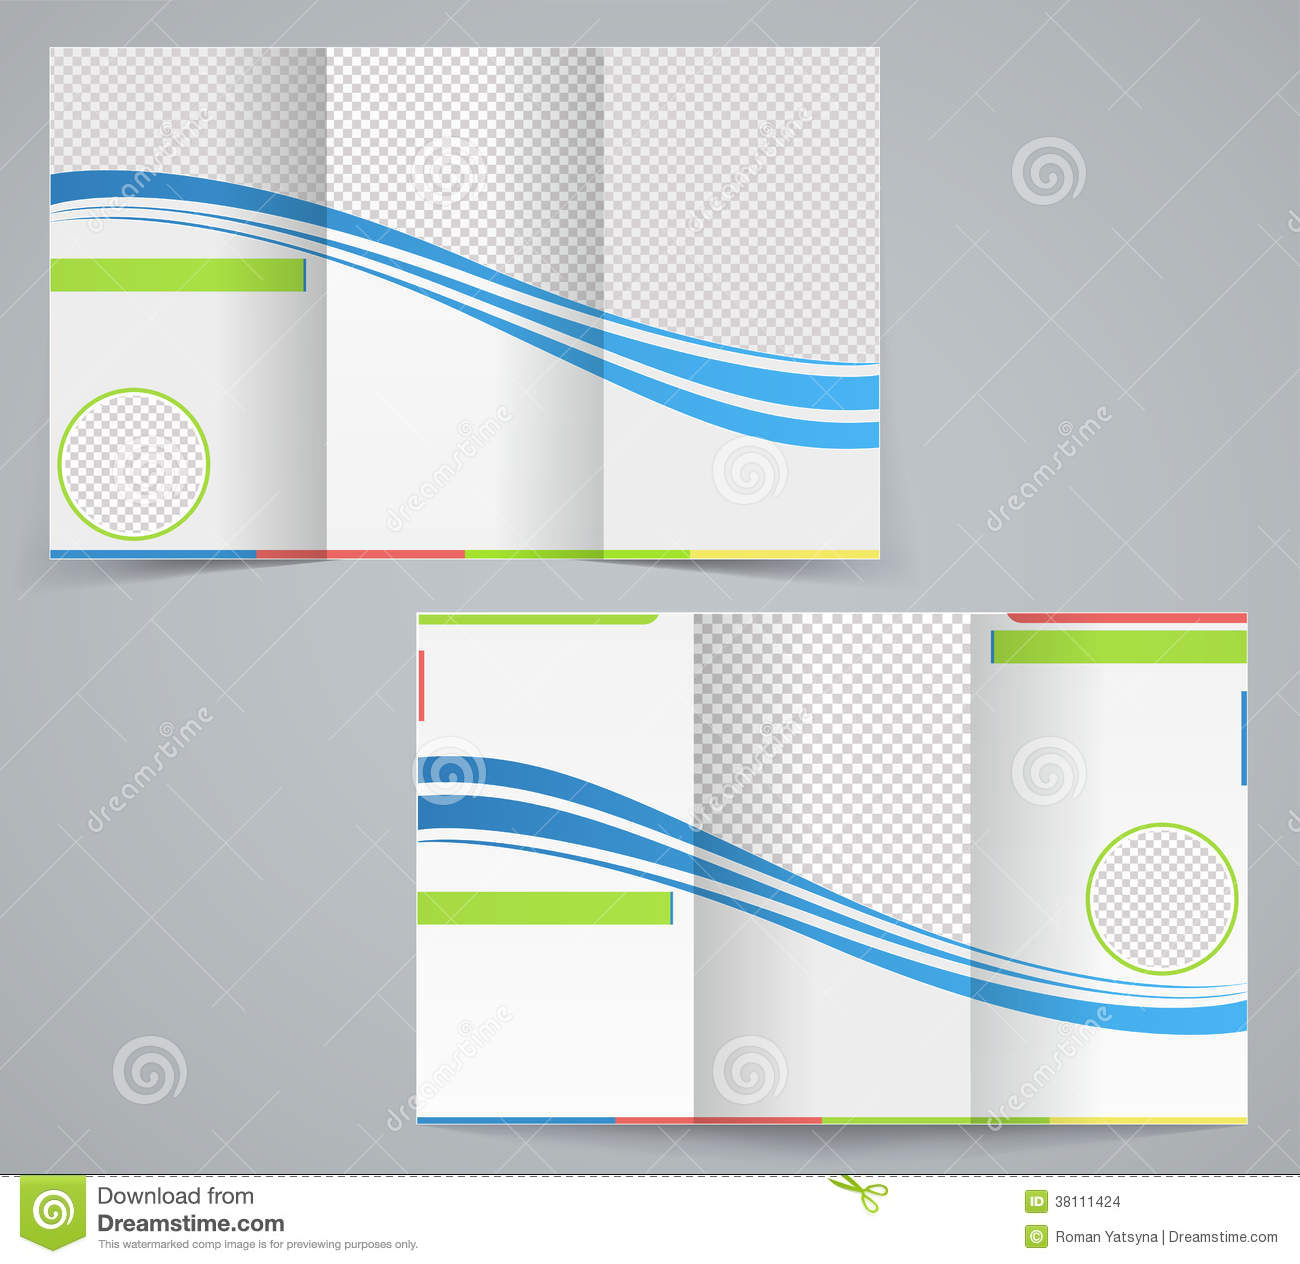 Tri fold business brochure template stock vector for Blank tri fold brochure template free download